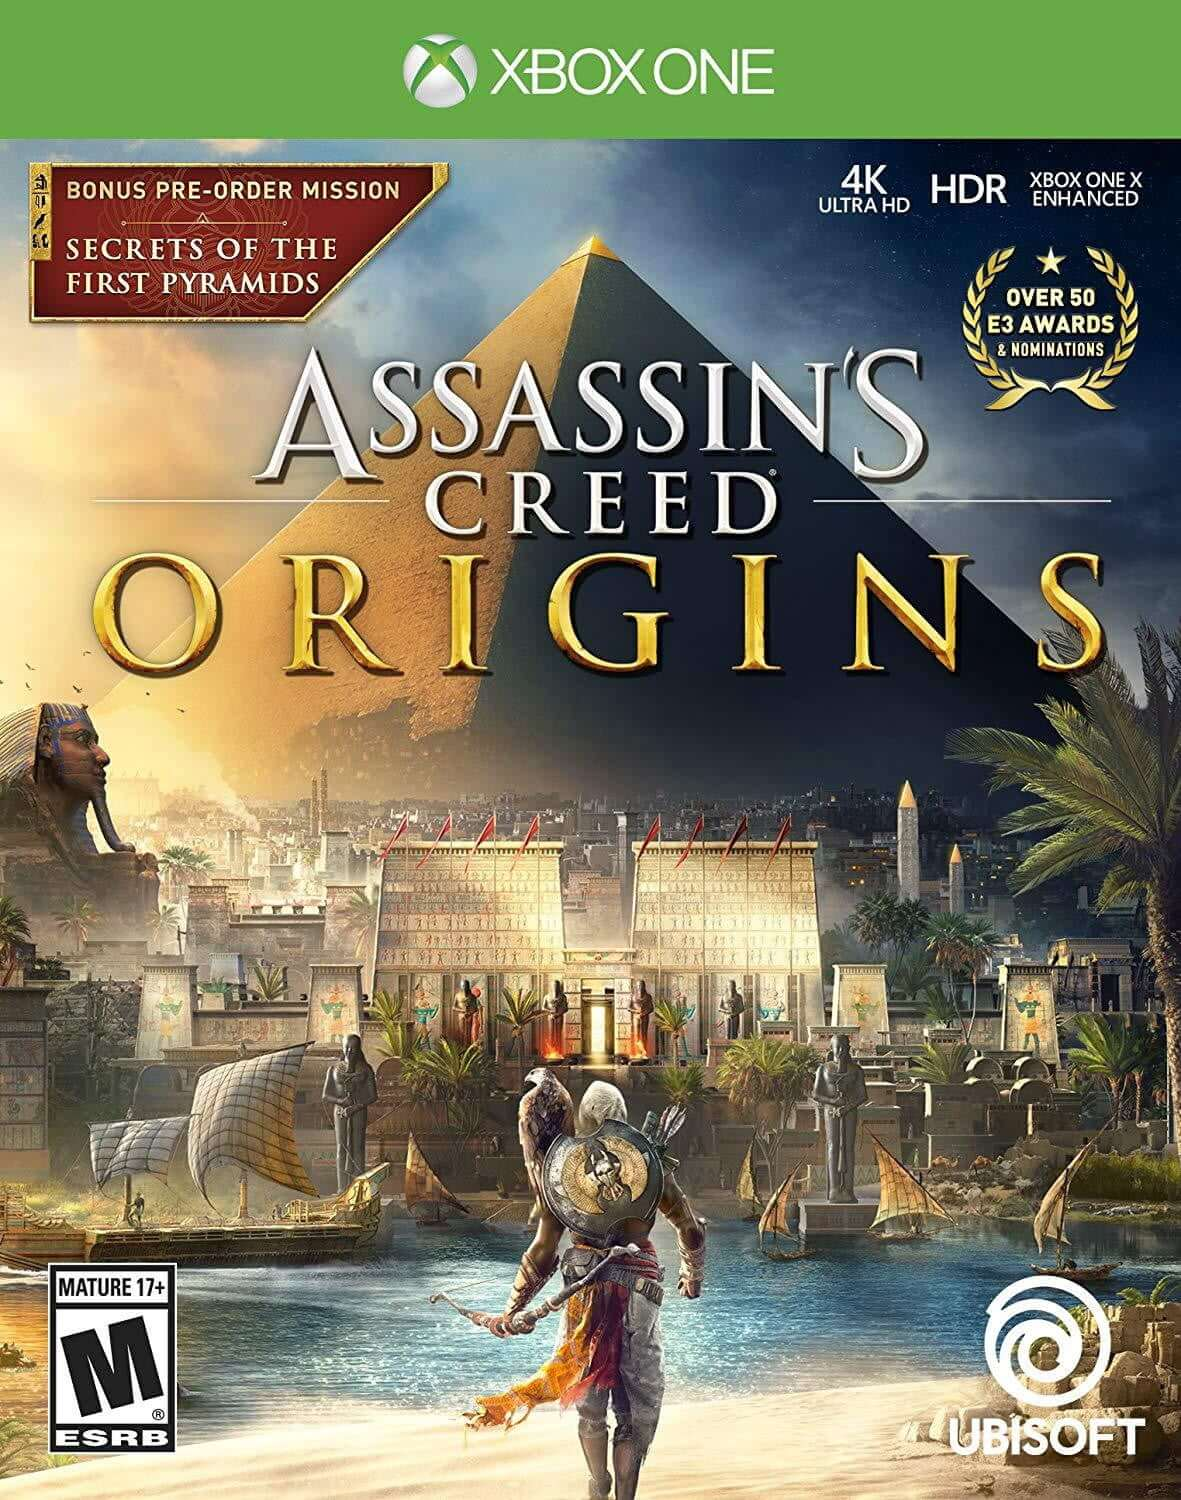 Buy Assassin's Creed Origins (XBOX ONE) XBOX ONE in Egypt - Shamy Stores